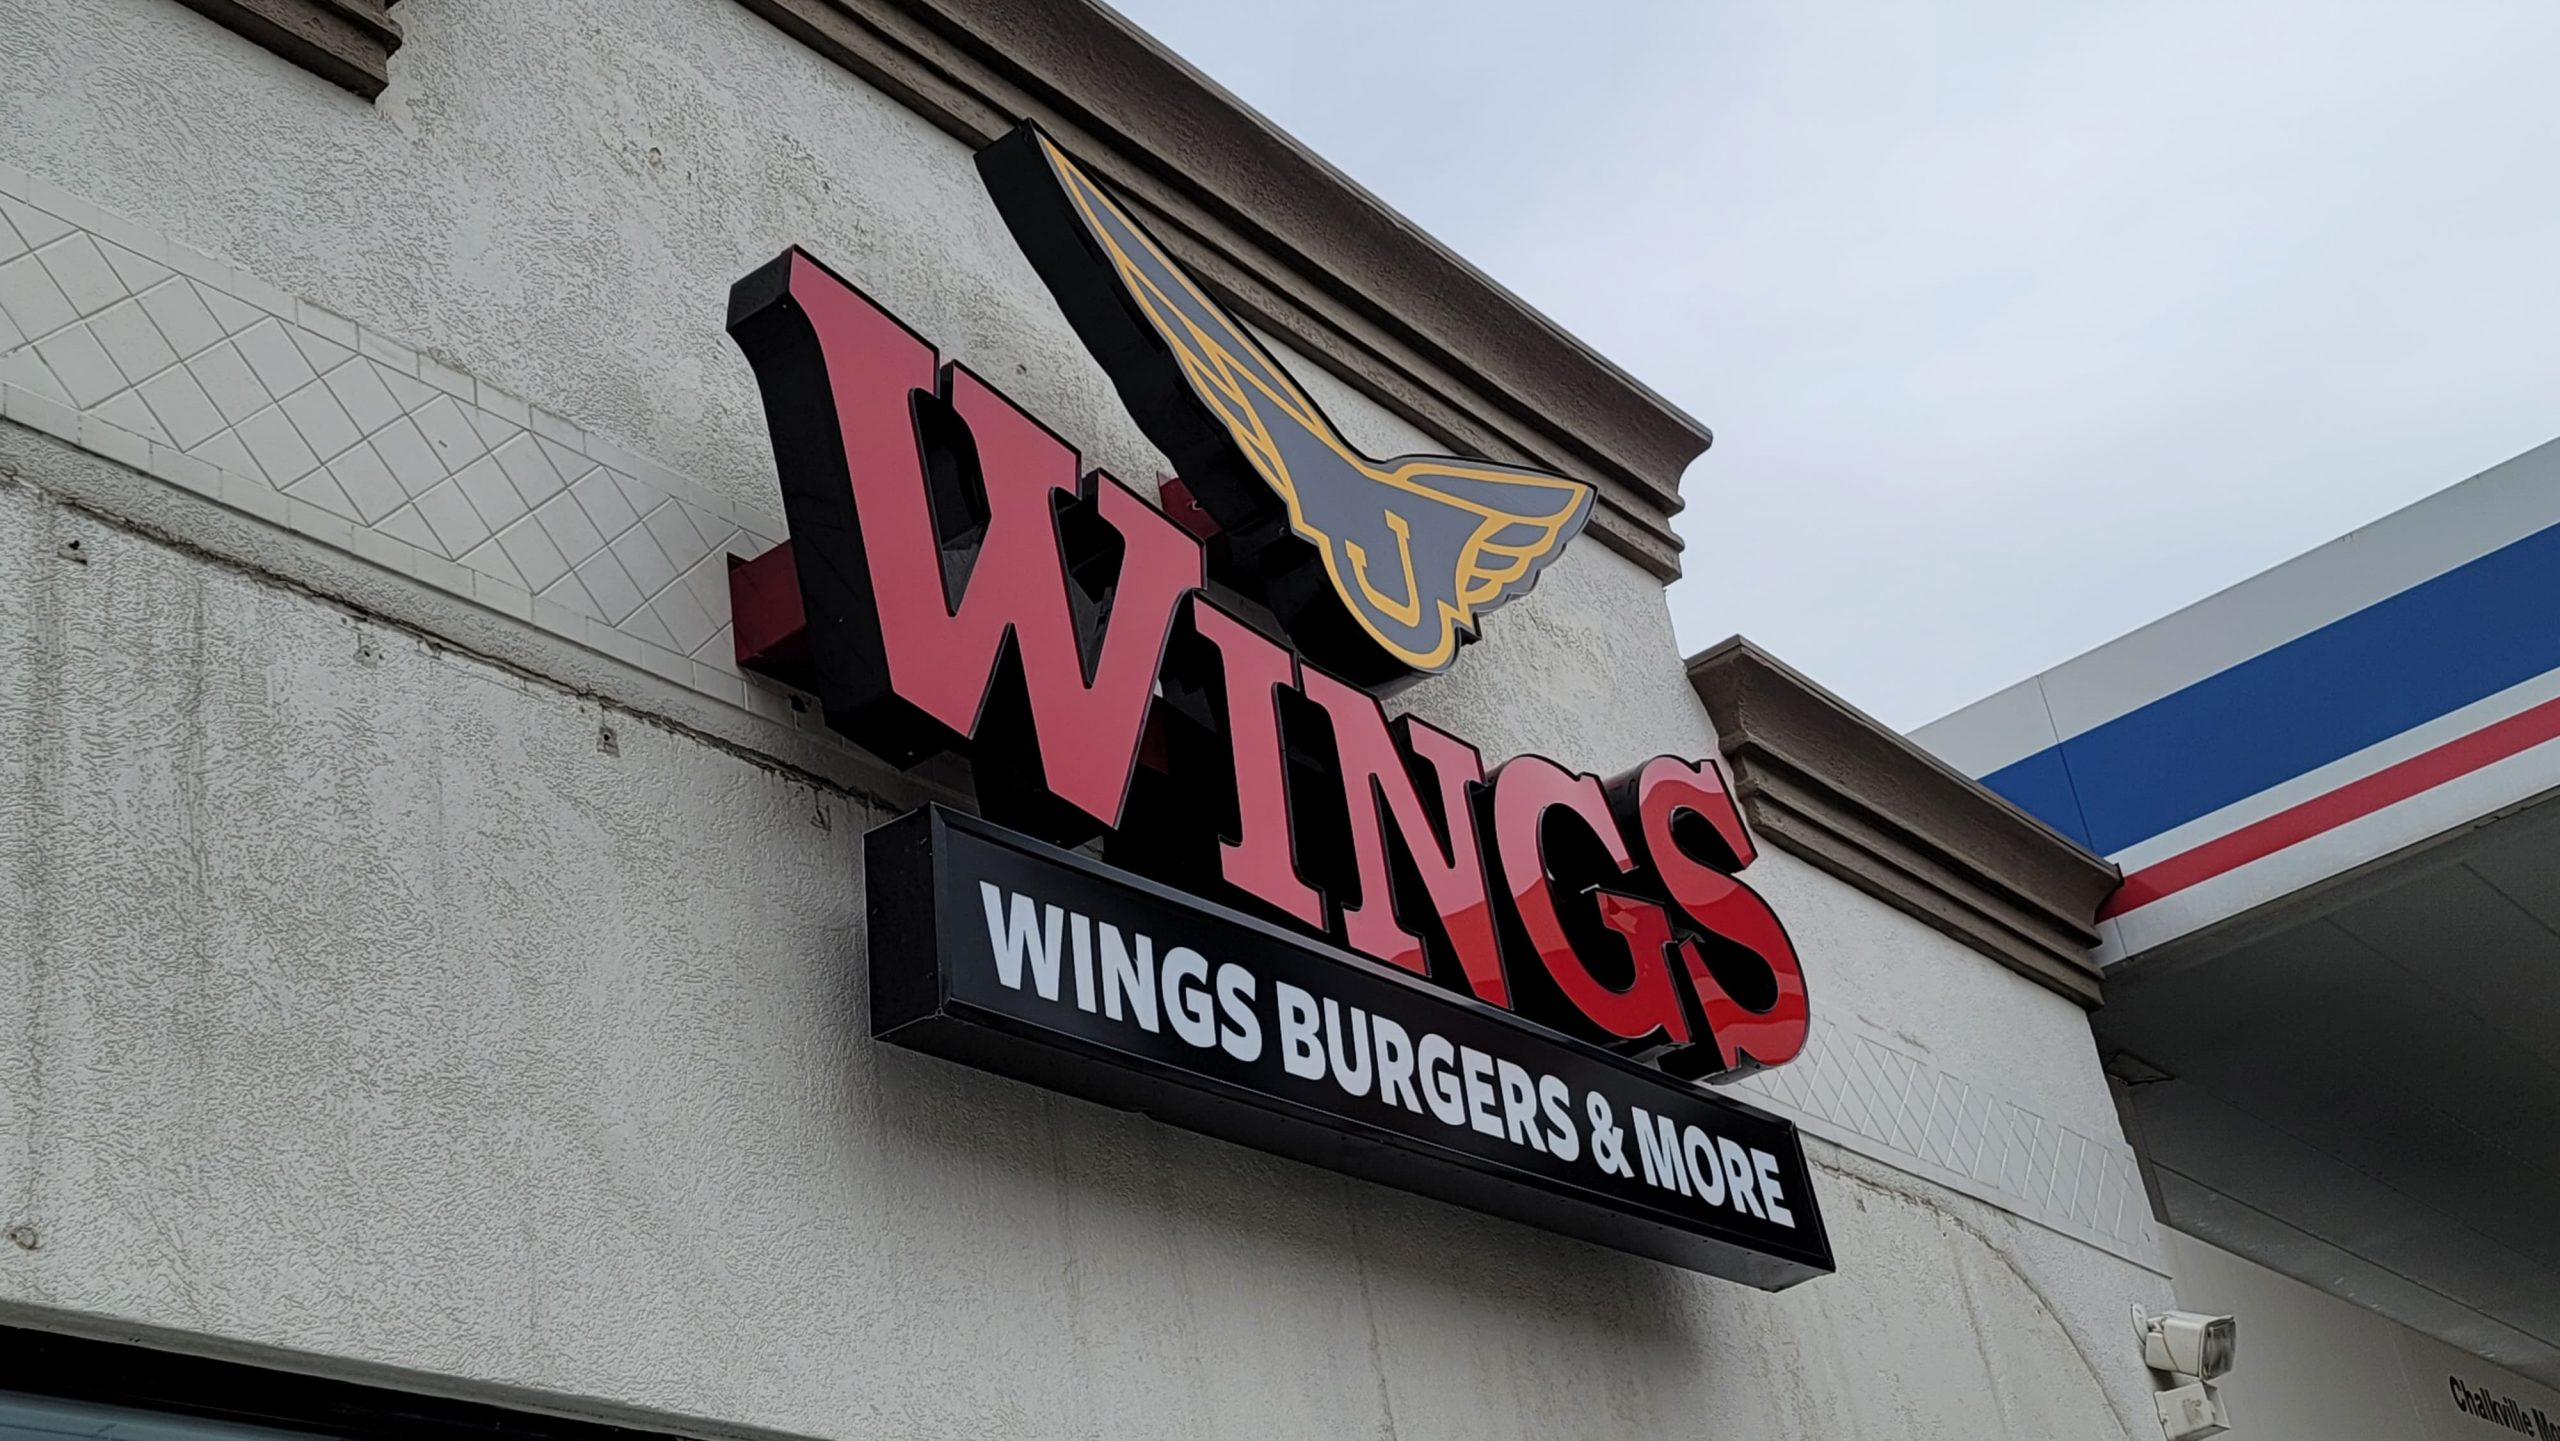 New J Wings location coming to Grayson Valley